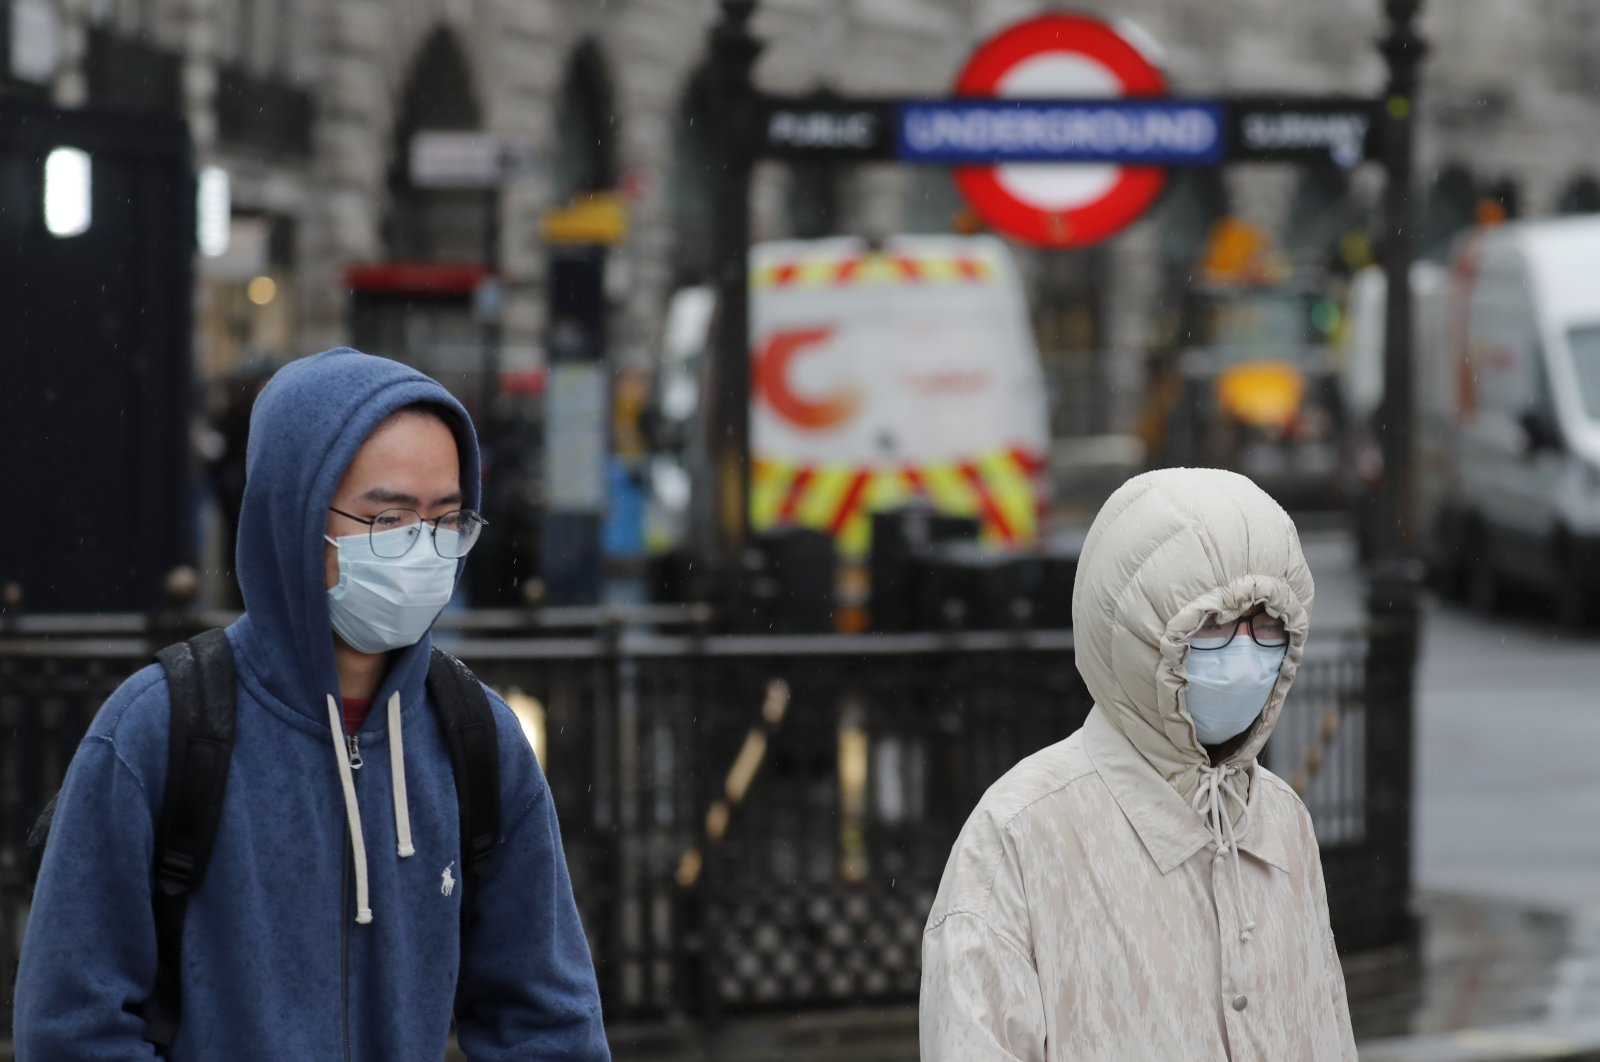 Pedestrians wear face masks as they walk in London's main tourist destination, Piccadilly Circus, March 5, 2020. (AP Photo)